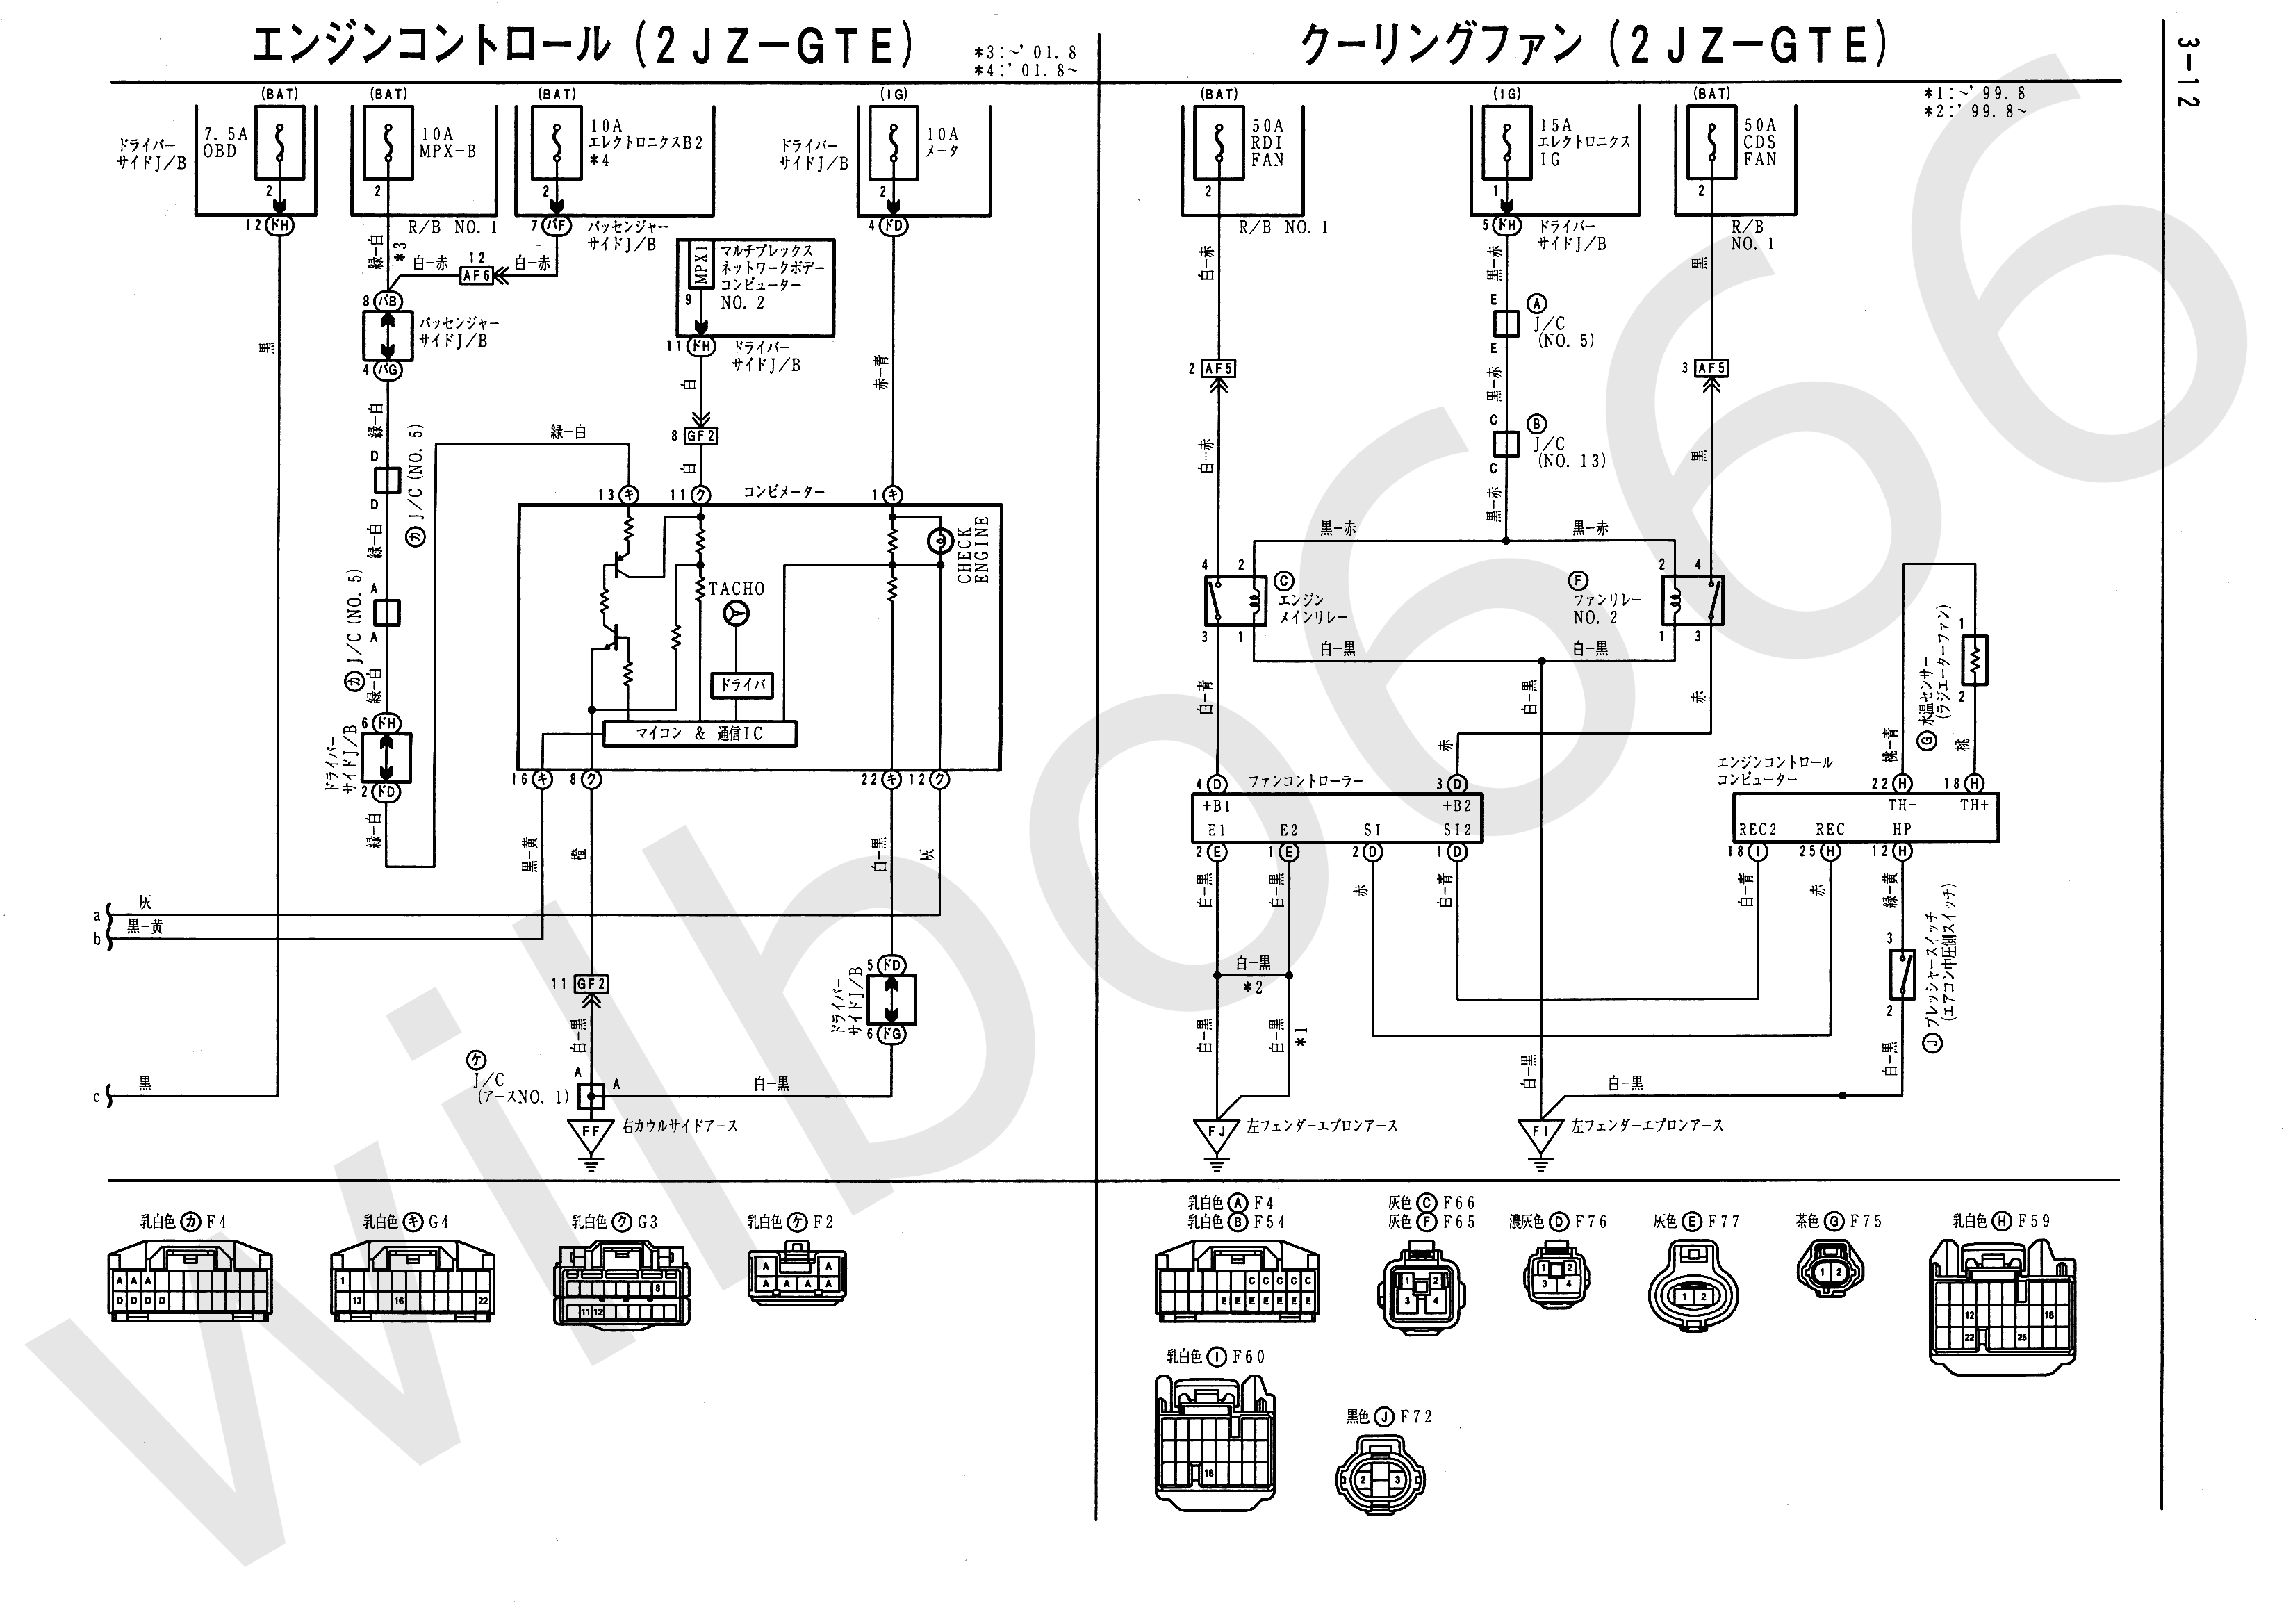 JZS161 Electrical Wiring Diagram 6748505 3 12?resize\\\=665%2C471 ge dryer motor replacement appliance aid on ge motor wiring we17x10010 wiring diagram at fashall.co